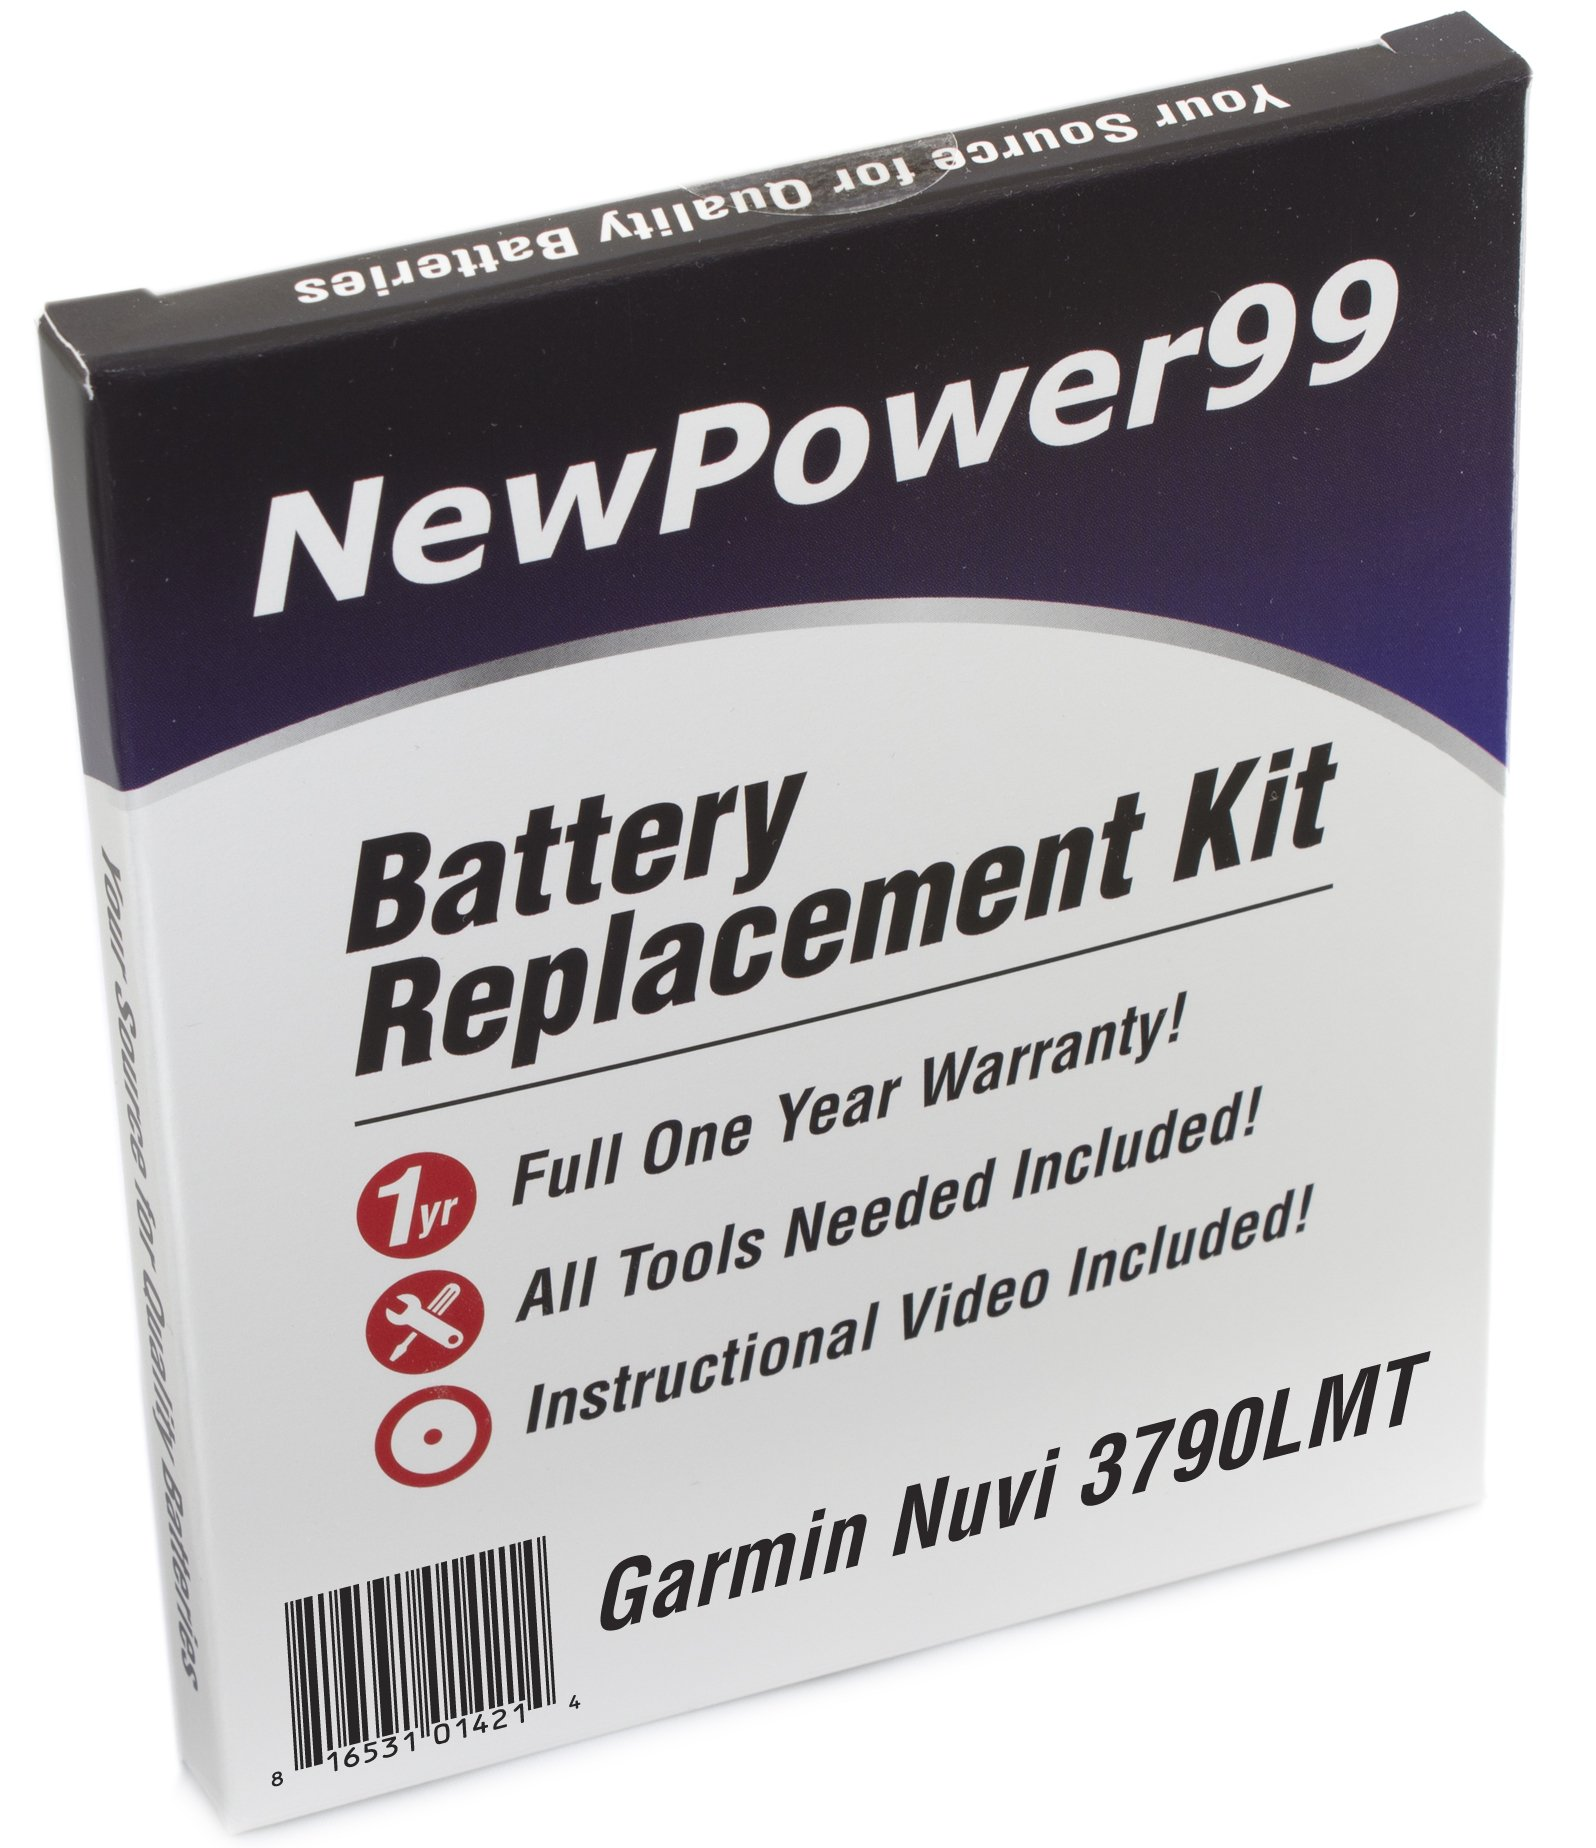 Garmin Nuvi 3790LMT Battery Replacement Kit with Installation Video, Tools, and Extended Life Battery.